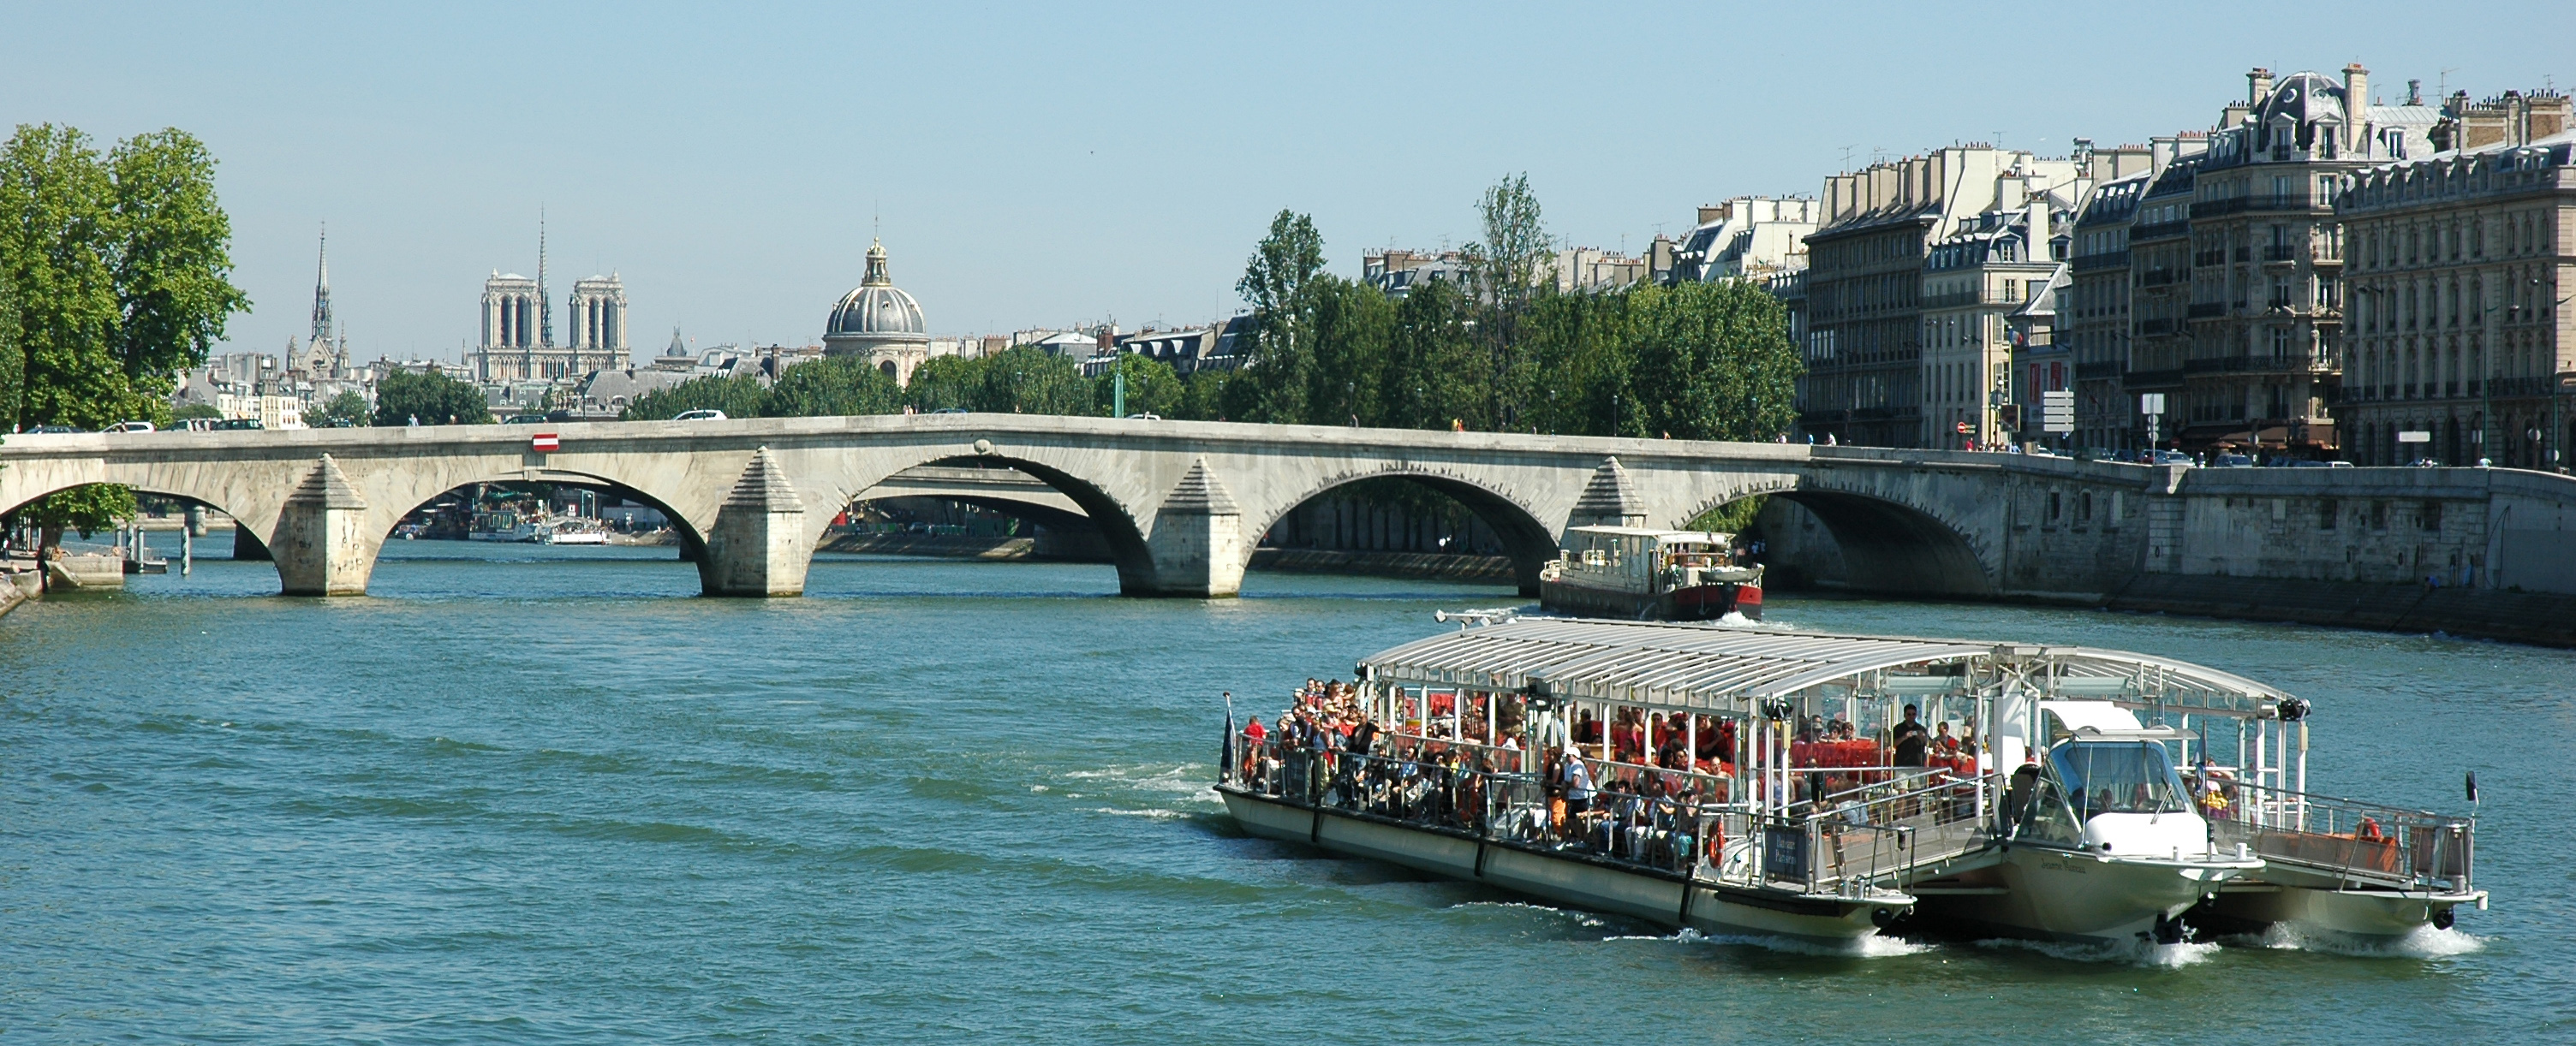 For the touristy river cruise which i dearly and unabashedly love